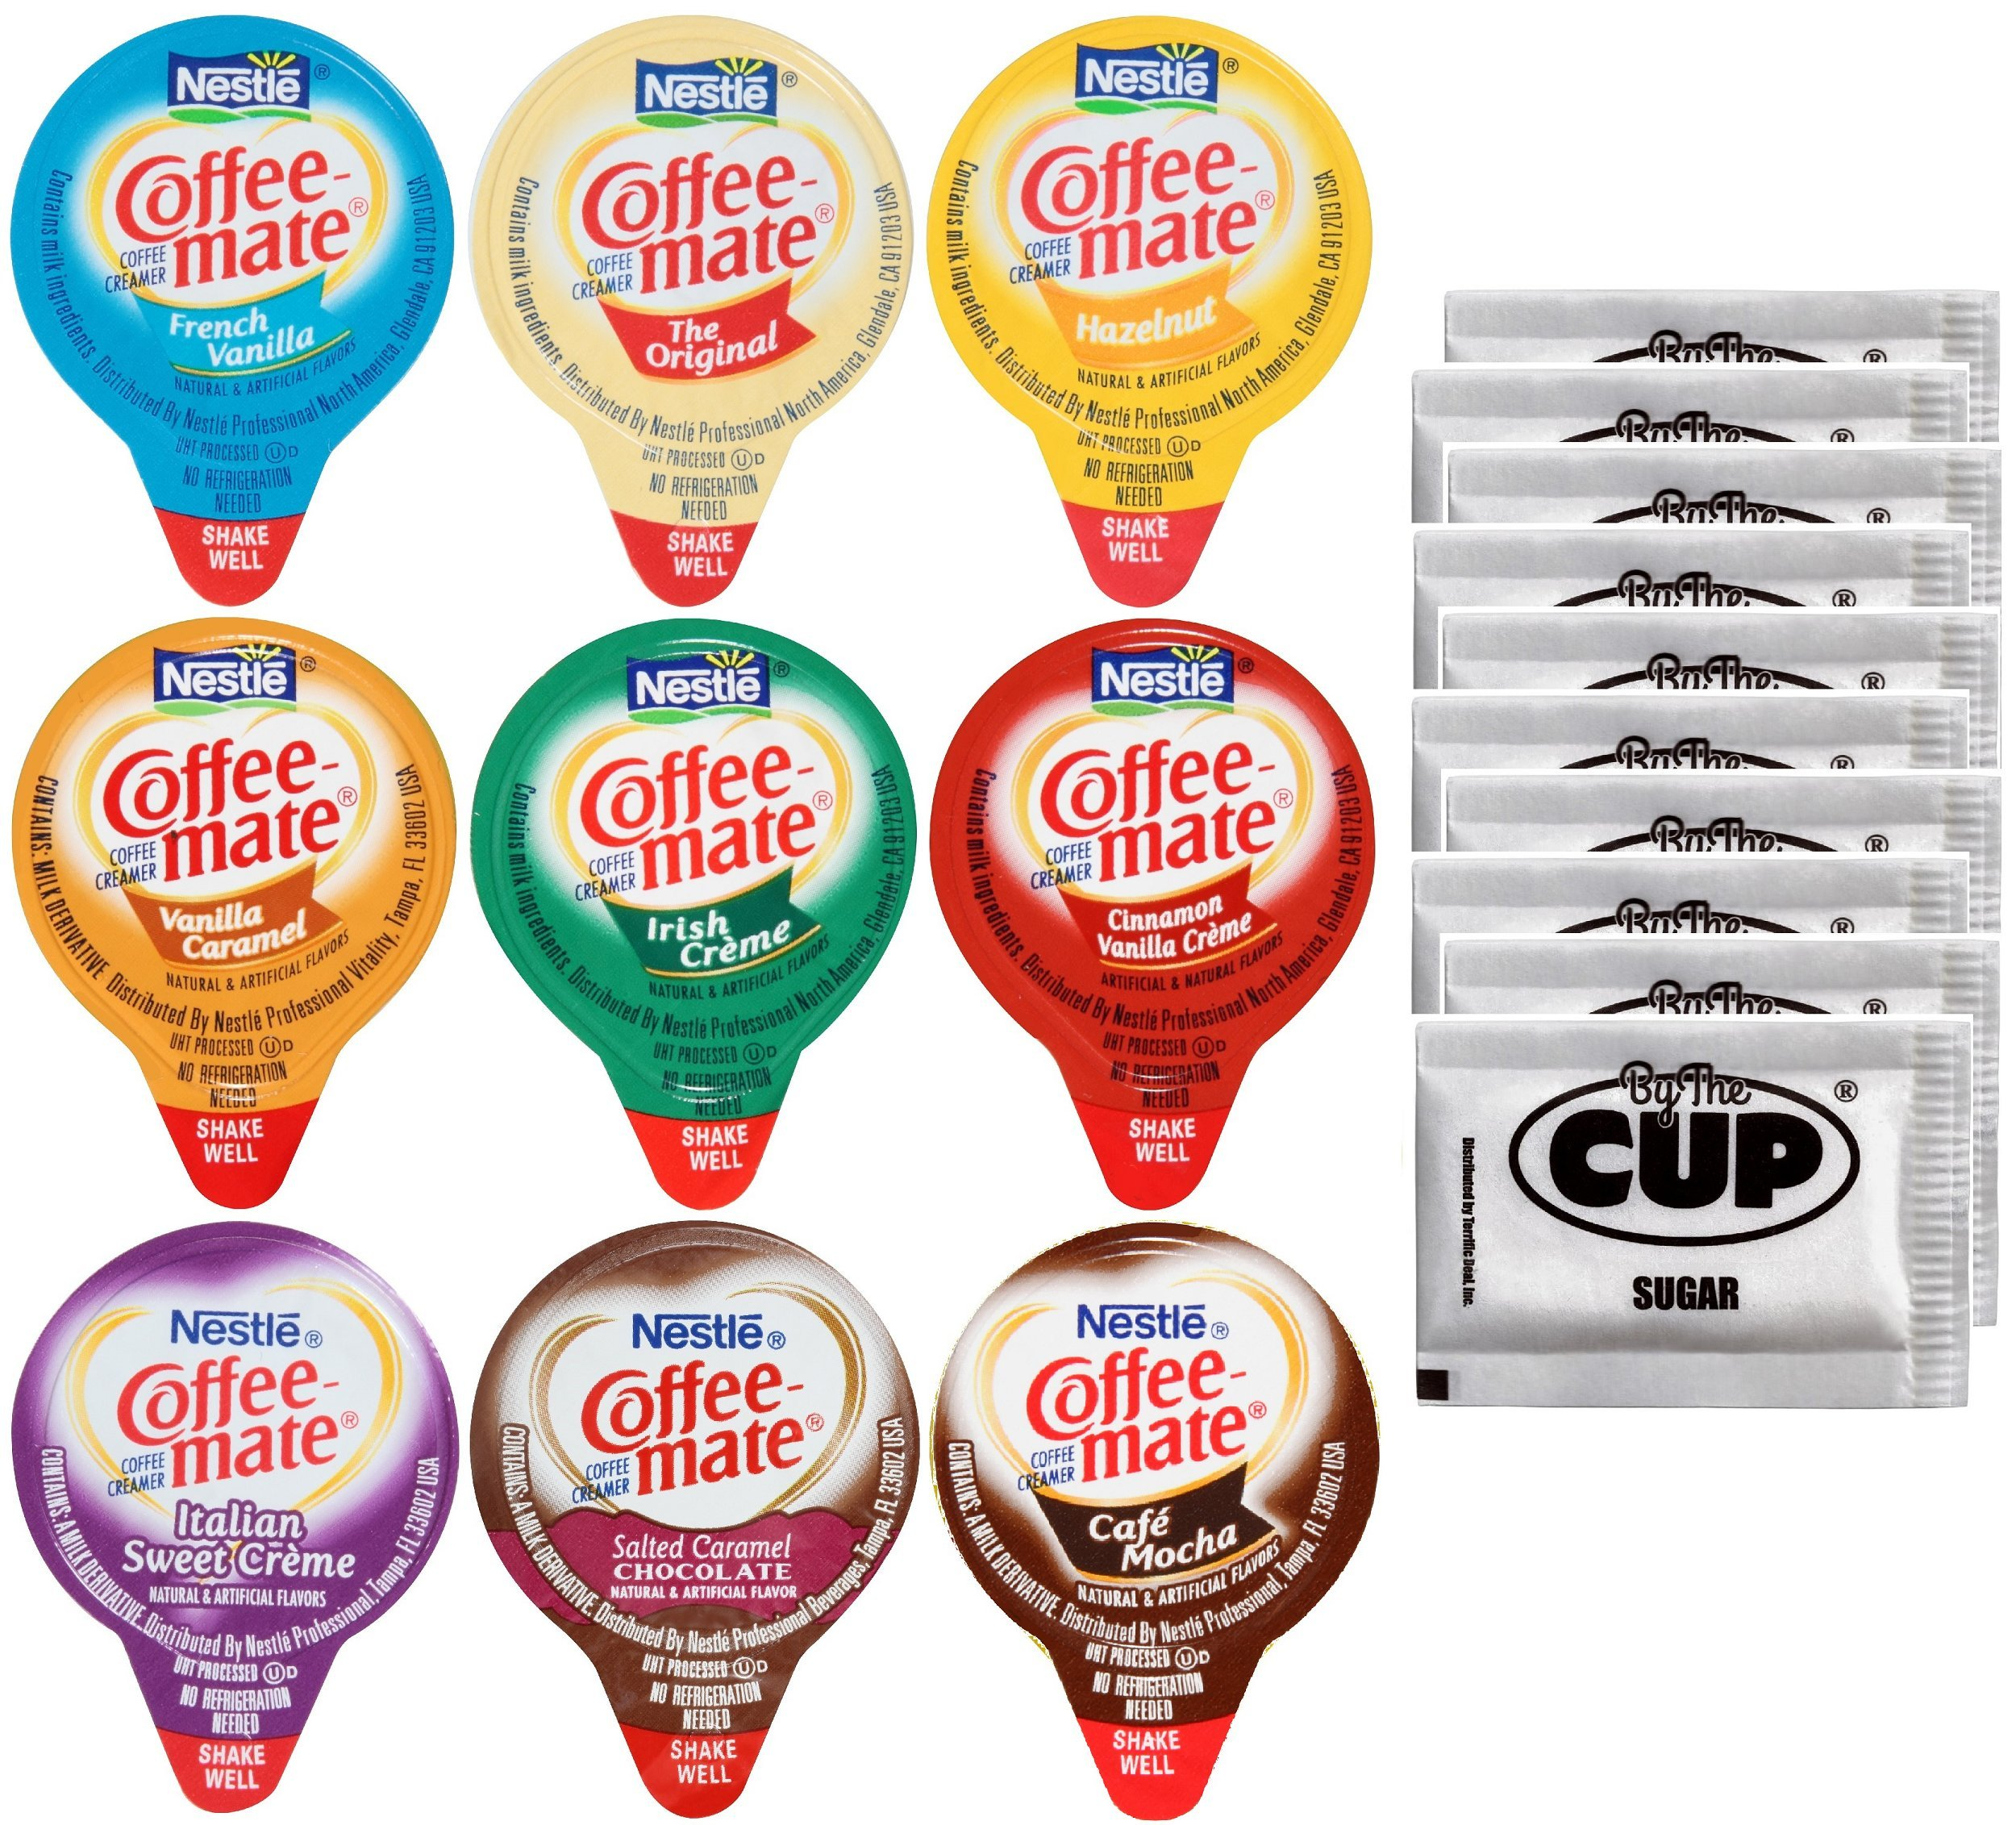 Coffee Mate .375oz Non-Dairy Liquid Creamer Singles - 9 Flavor Assortment, Hazelnut, French Vanilla, Original, Cafe Mocha, Salted Caramel (180 Pack) - Exclusive By The Cup Sugar Packets by By The Cup